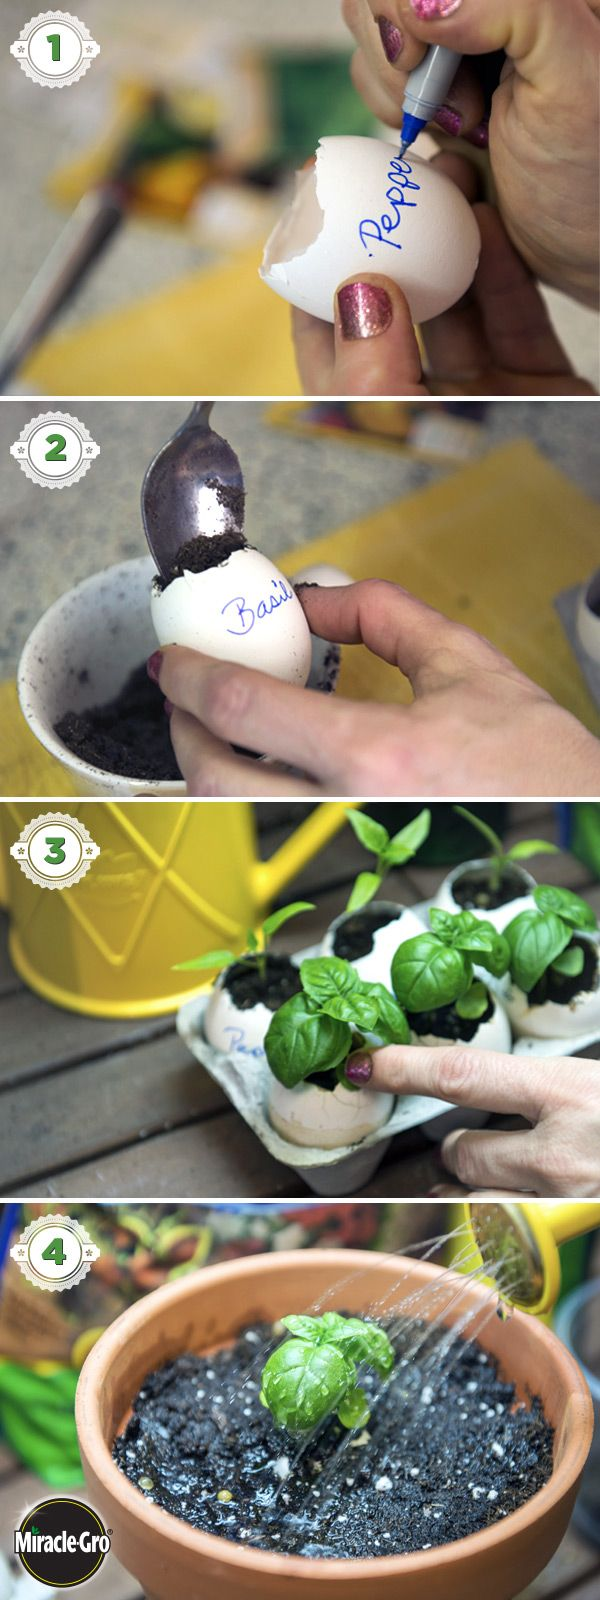 Start Garden Seeds Indoors 29 best seed starting images on pinterest vegetable garden gardening learn how to grow your own seeds indoors using eggshells in this simple diy tutorial video workwithnaturefo